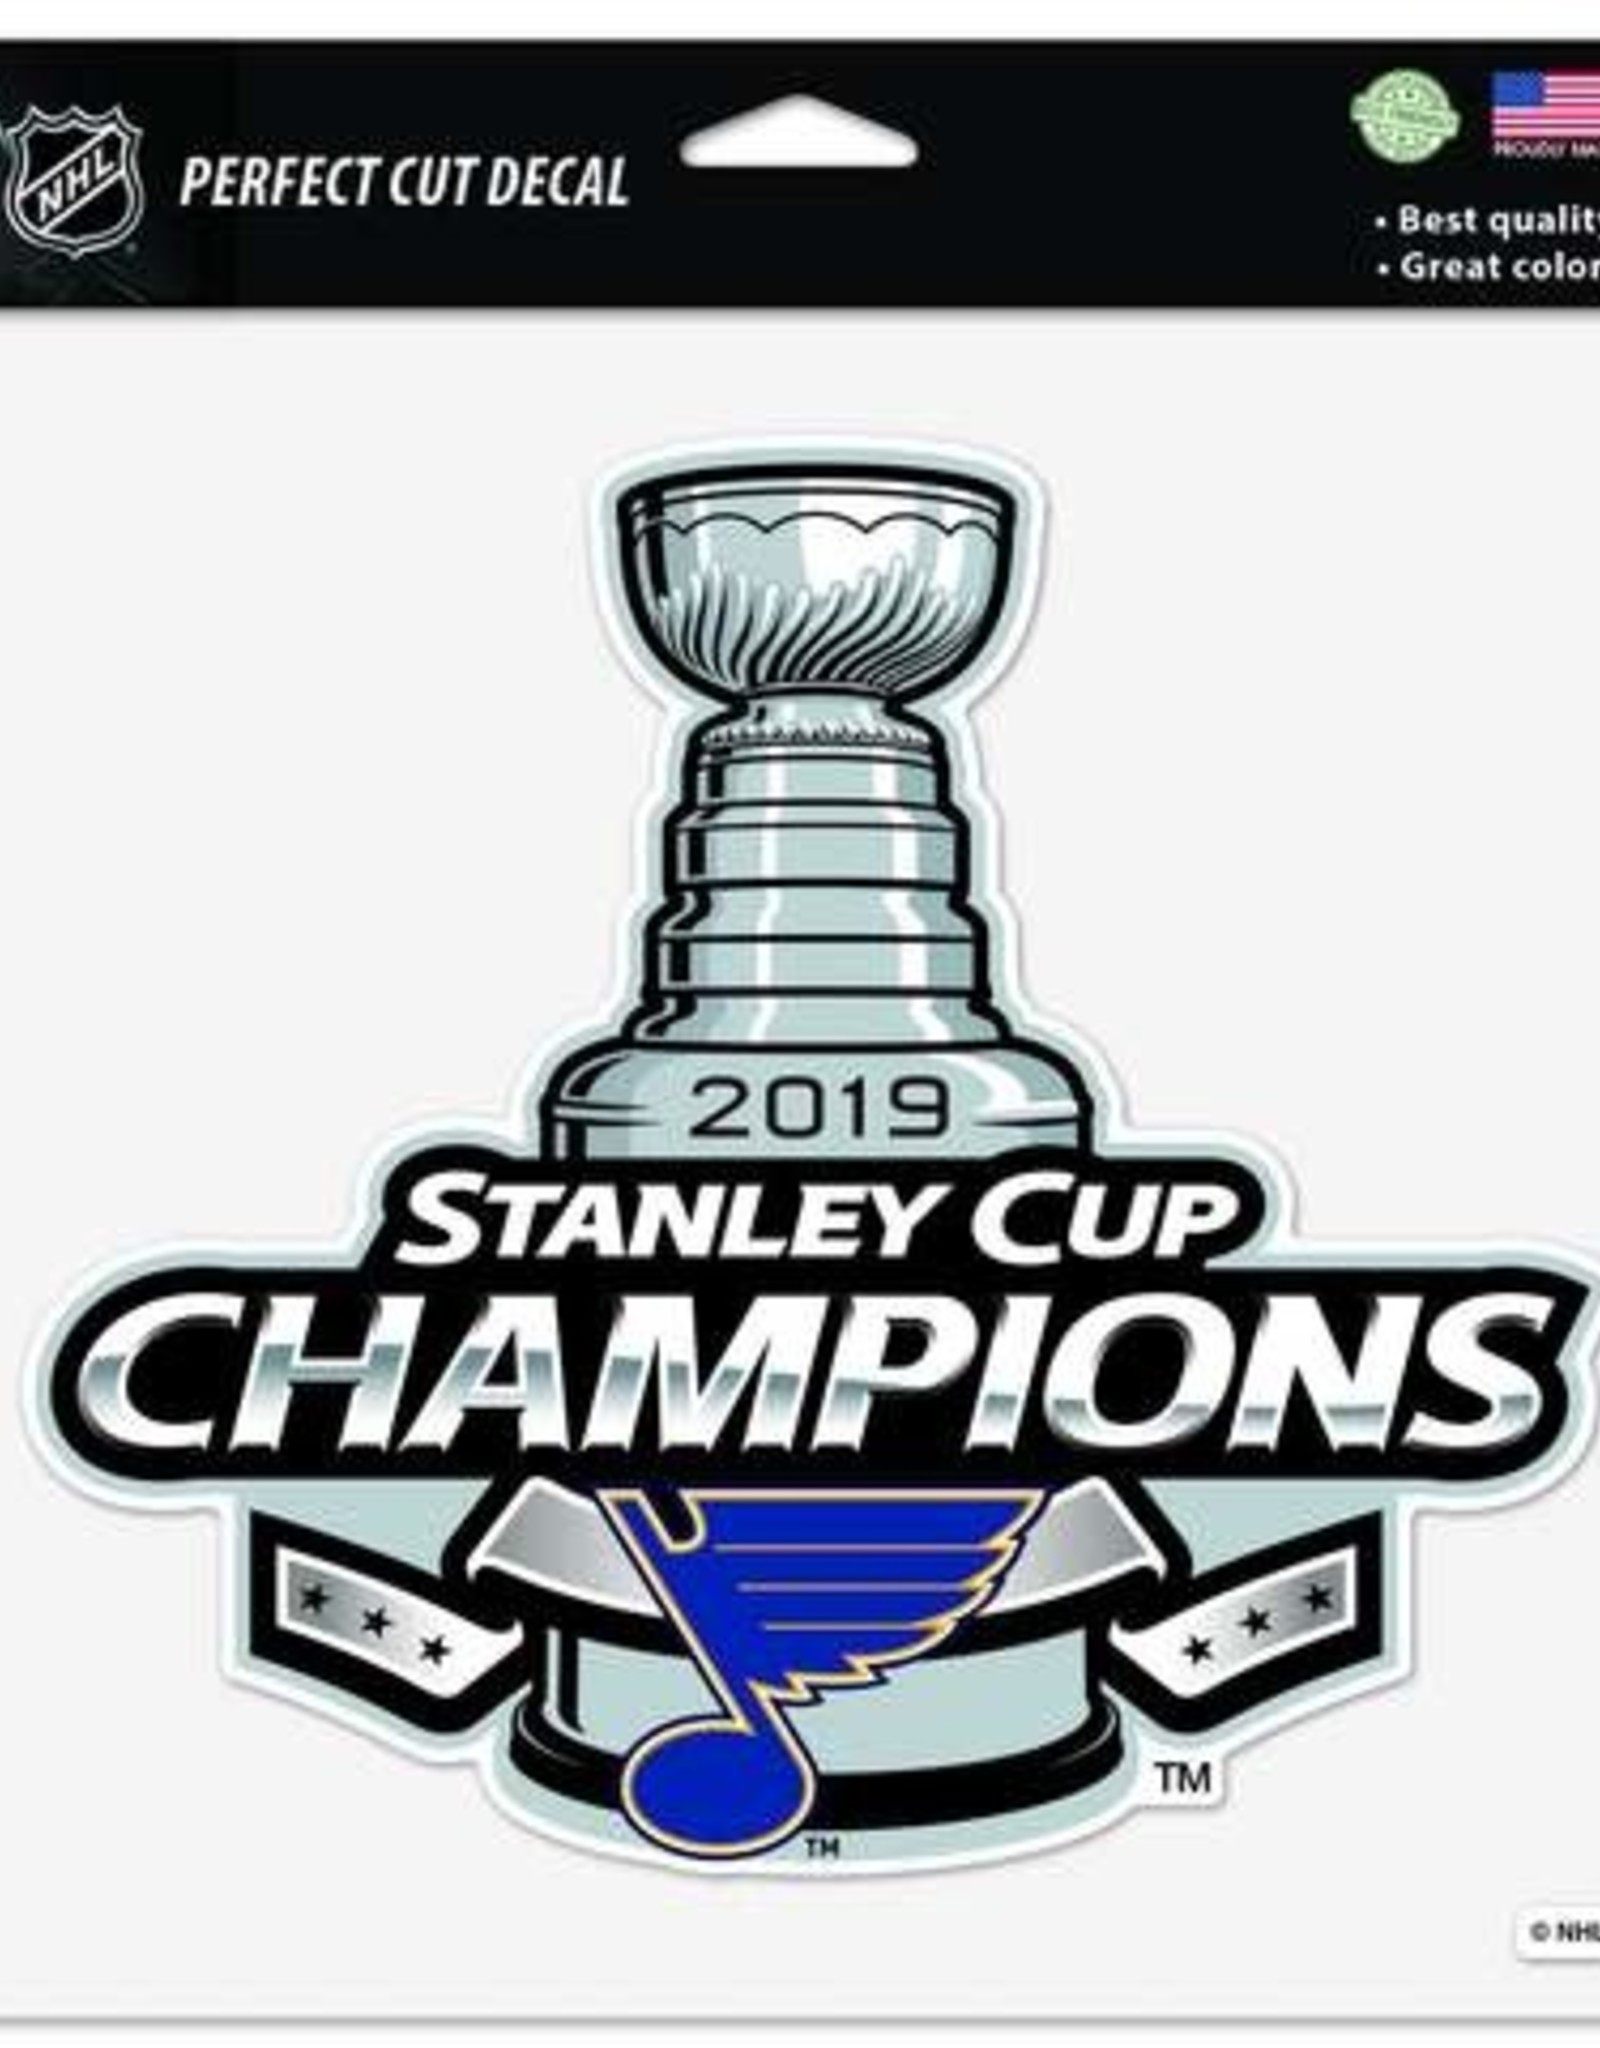 Wincraft Wincraft Blues Champs Perfect Cut Decal (8 x 8)